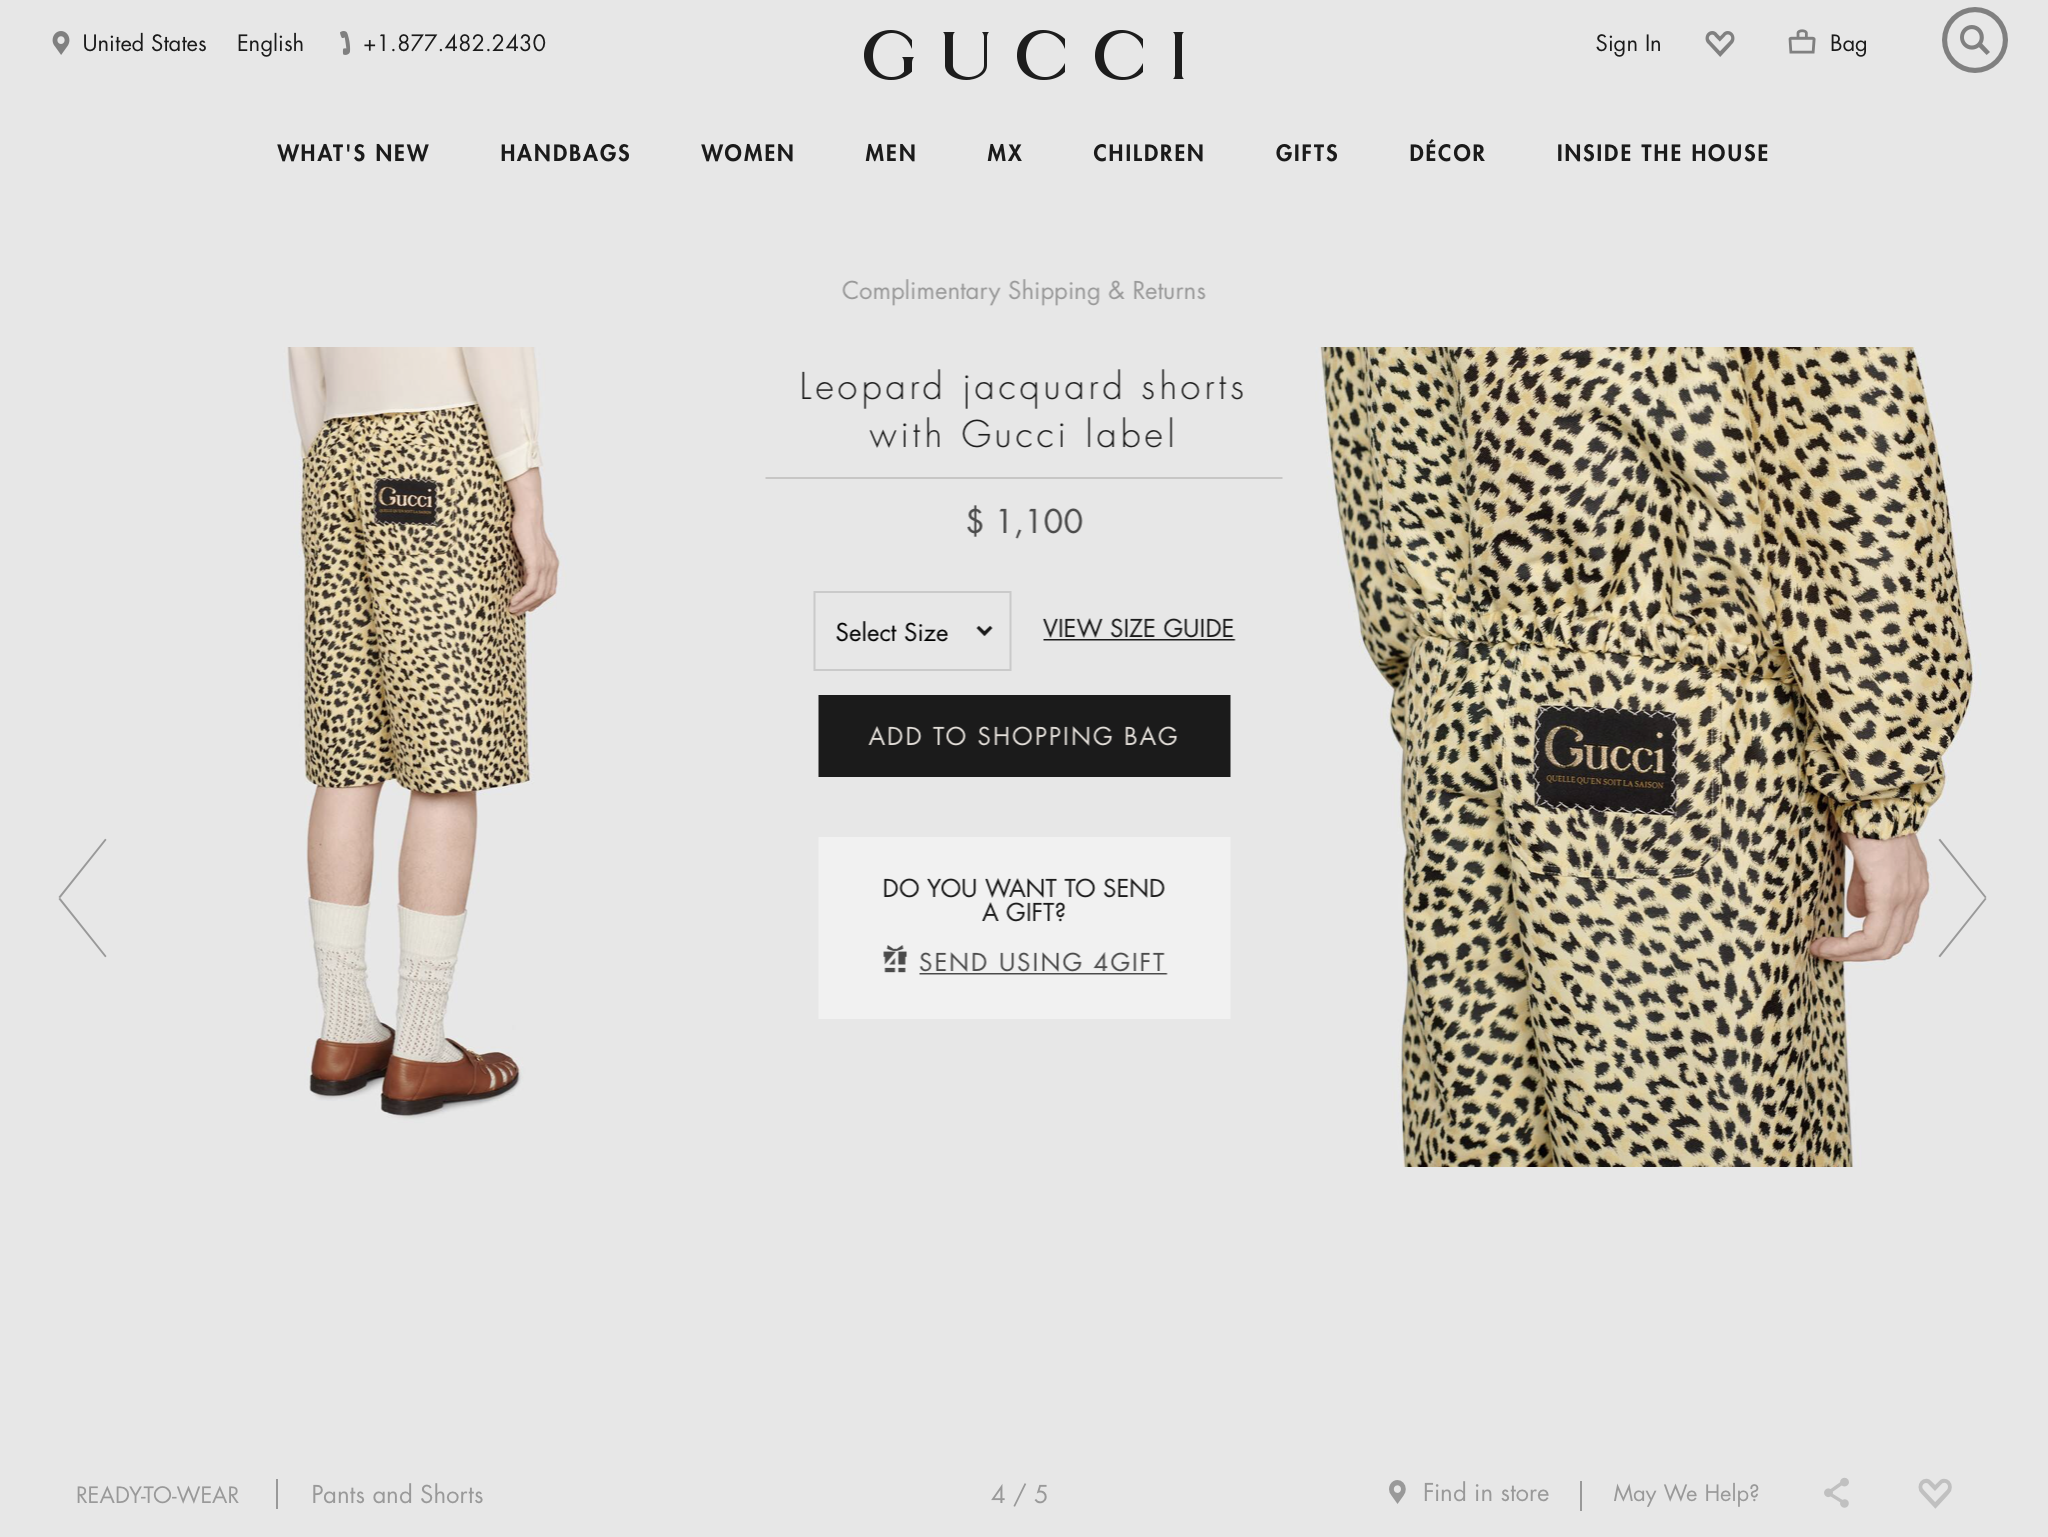 Leopard jacquard shorts with Gucci label